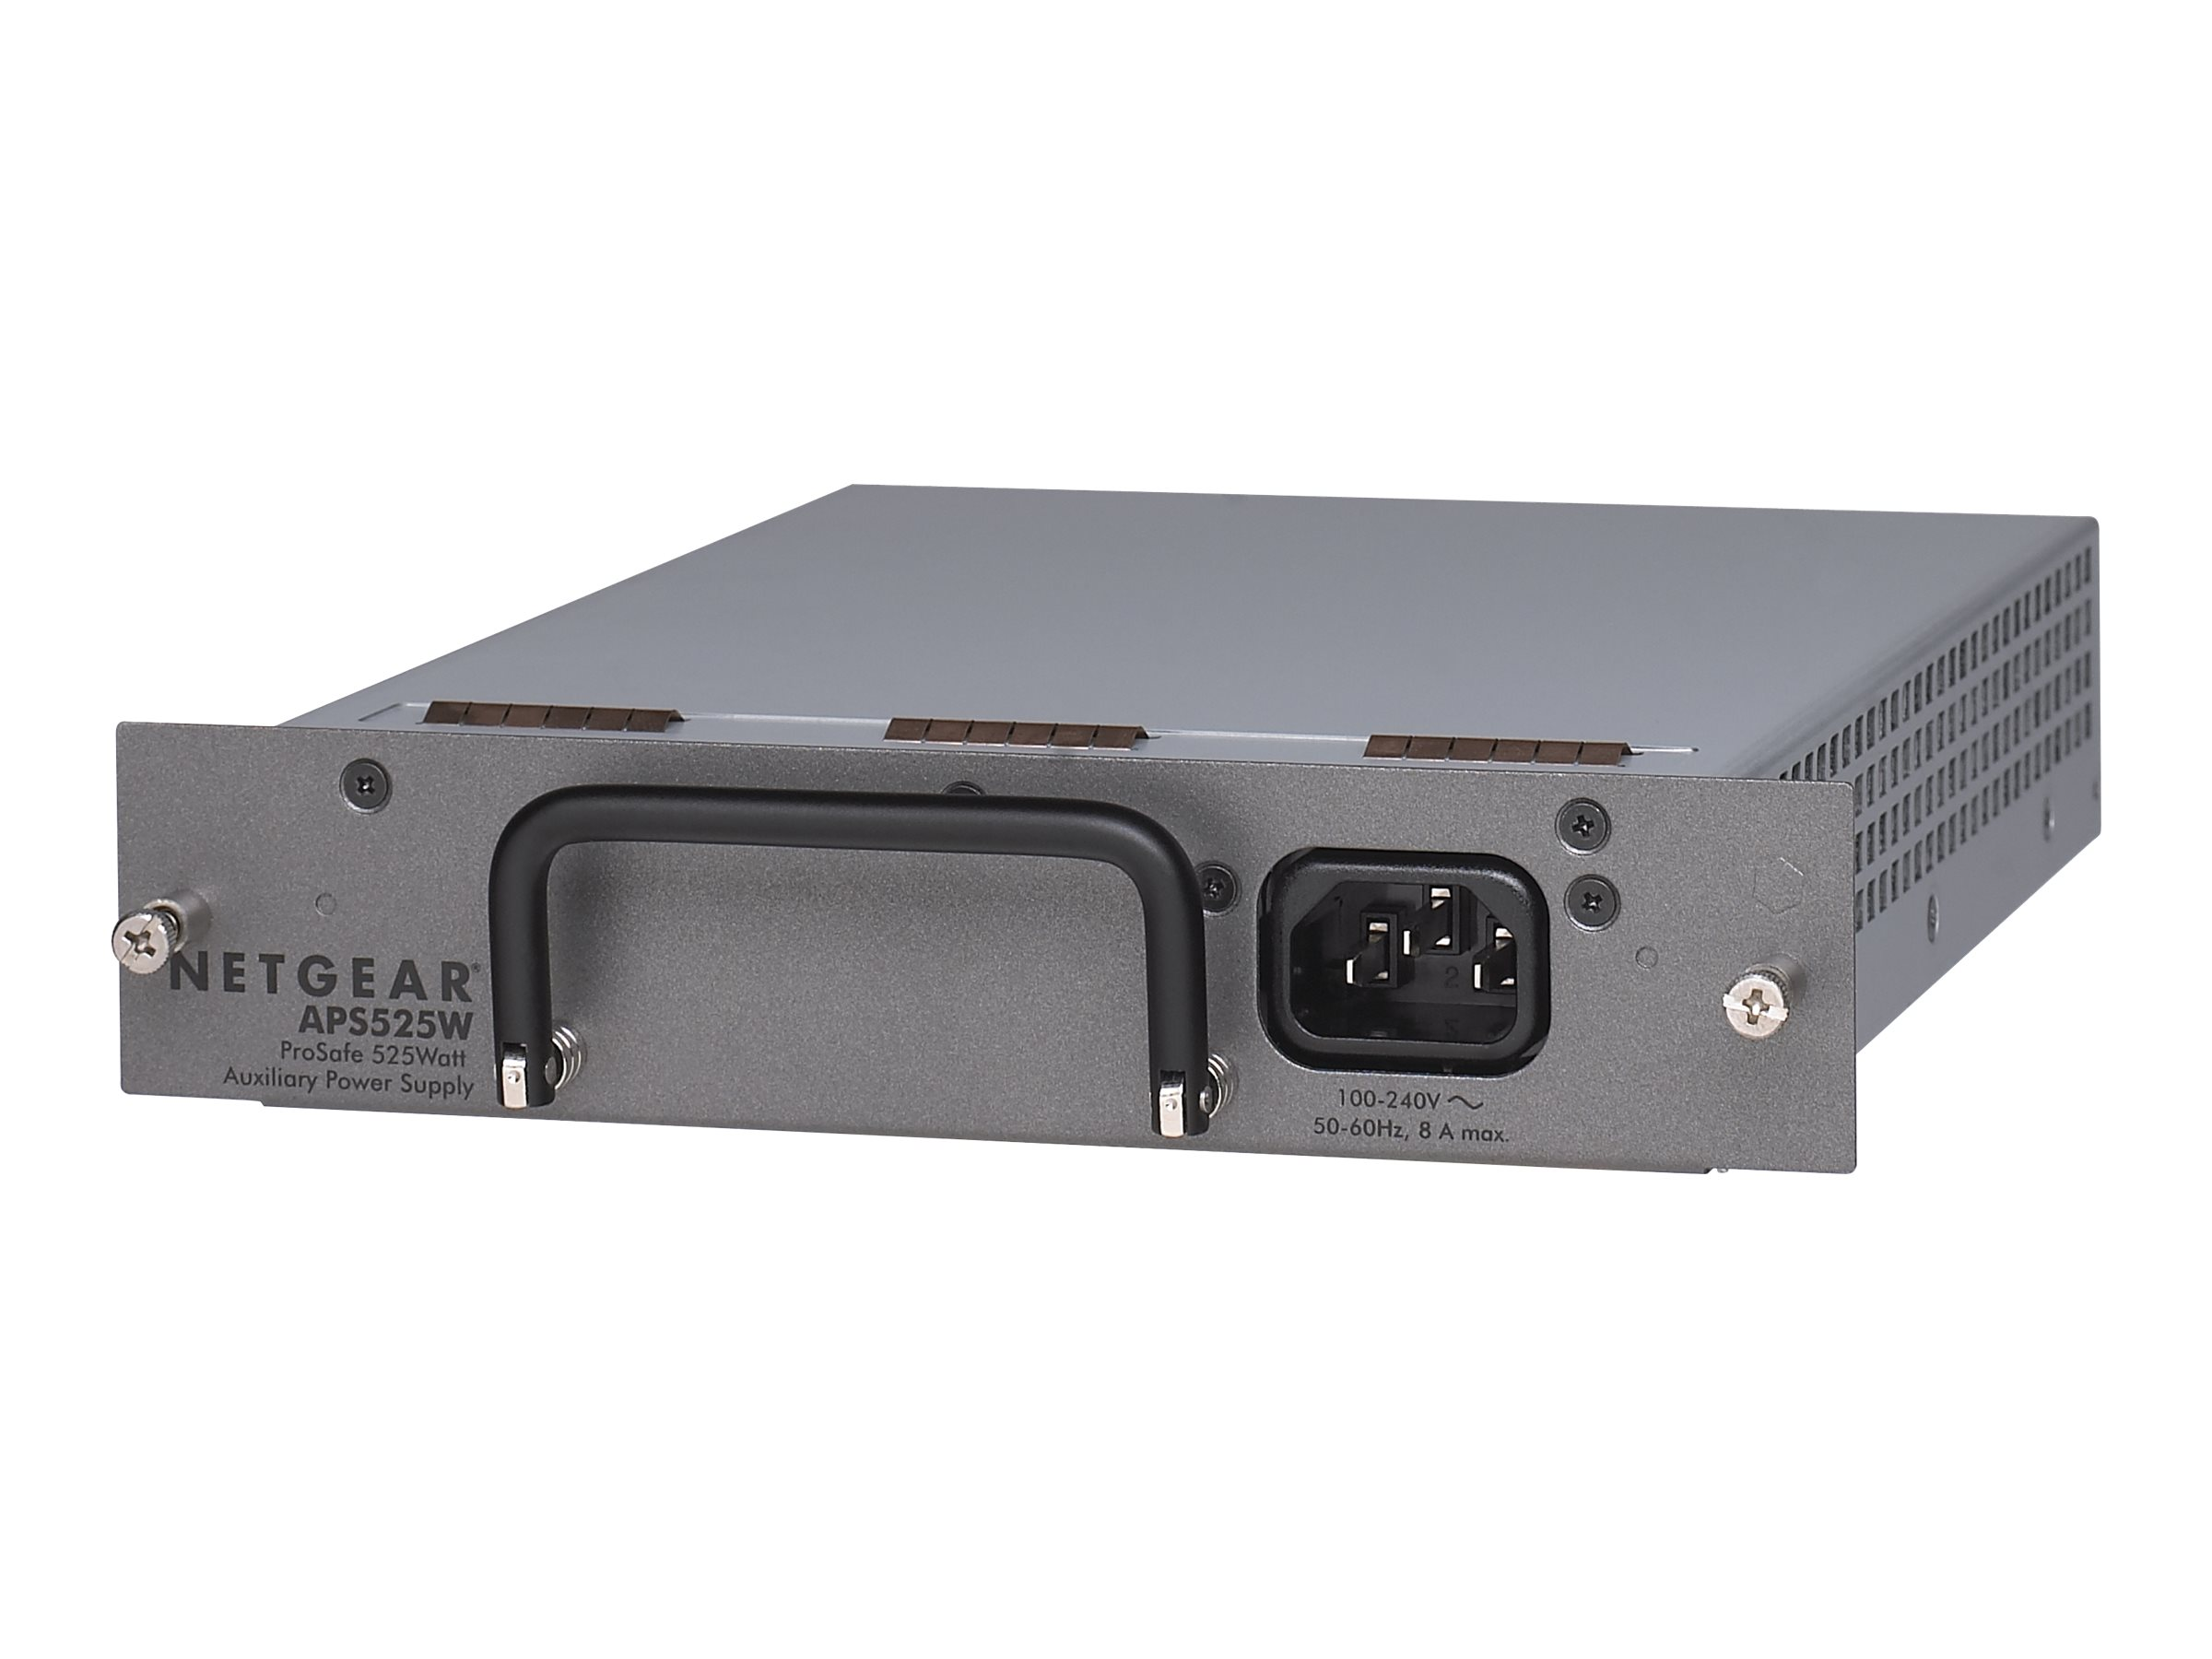 NETGEAR Prosafe APS300W Auxiliary Power Supply - power supply - hot-plug / redundant - 300 Watt